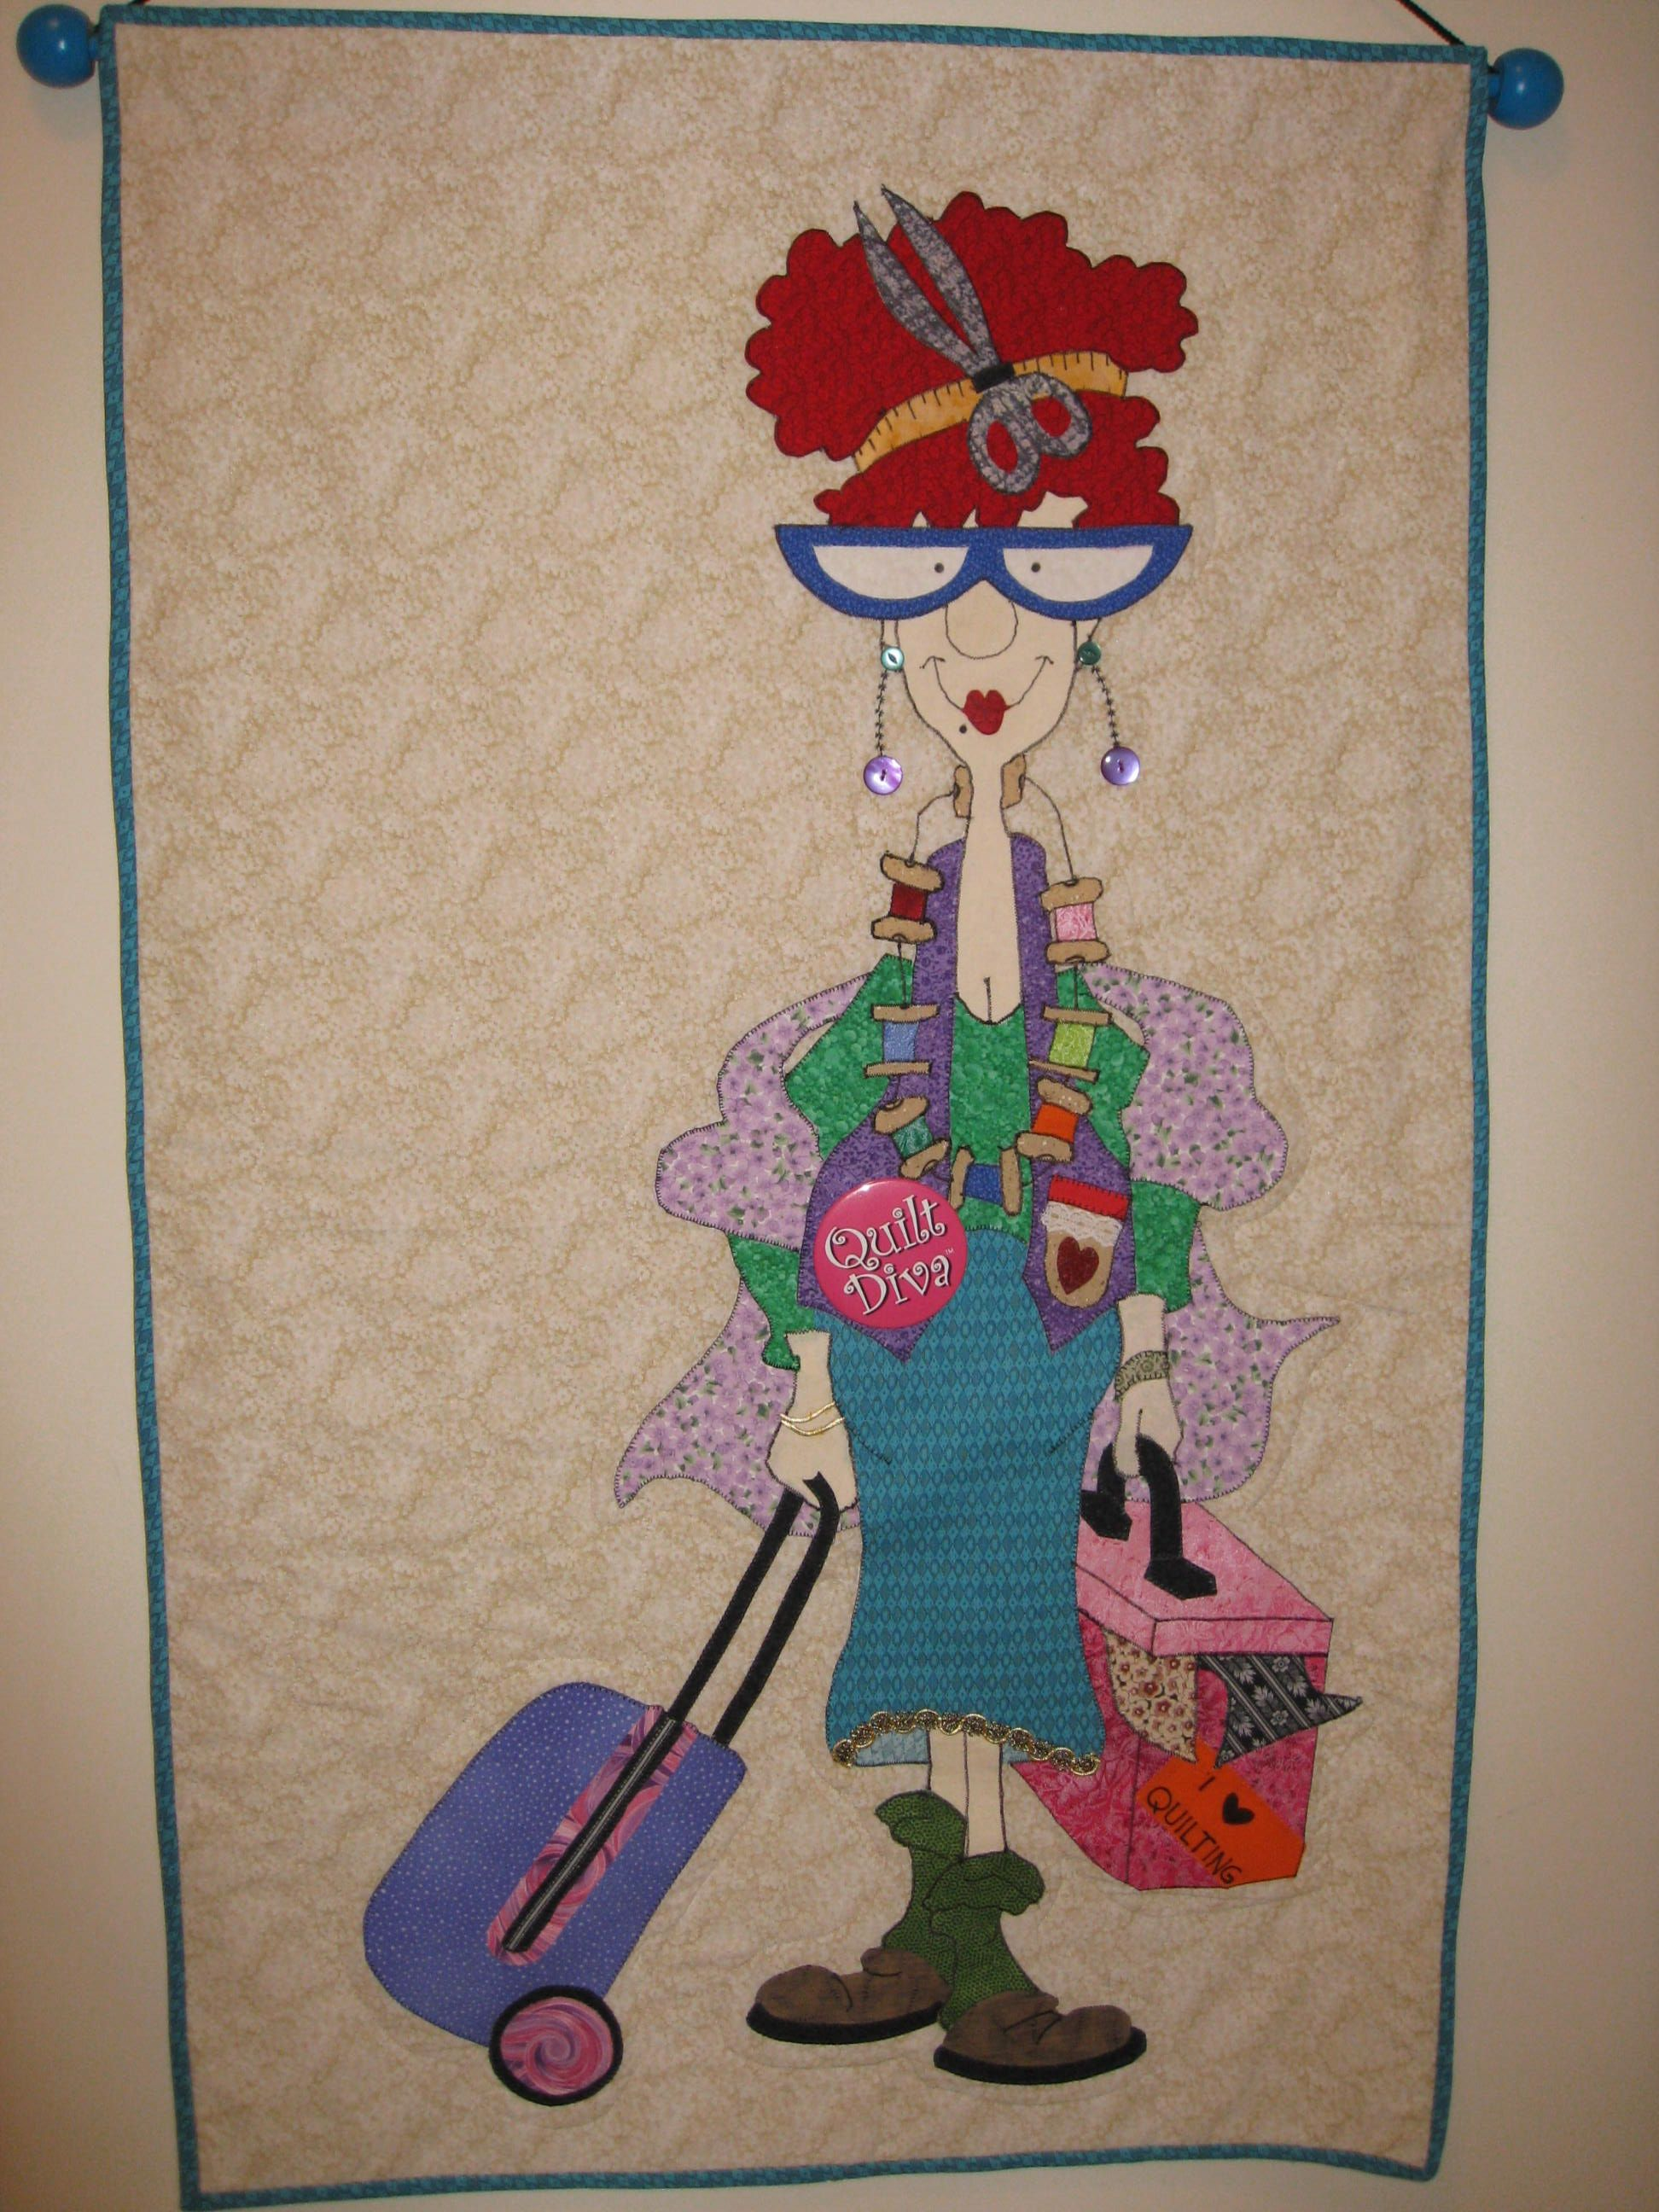 made from Amy Bradley Designs Quilt Diva pattern | quilts ... : amy bradley quilt patterns - Adamdwight.com